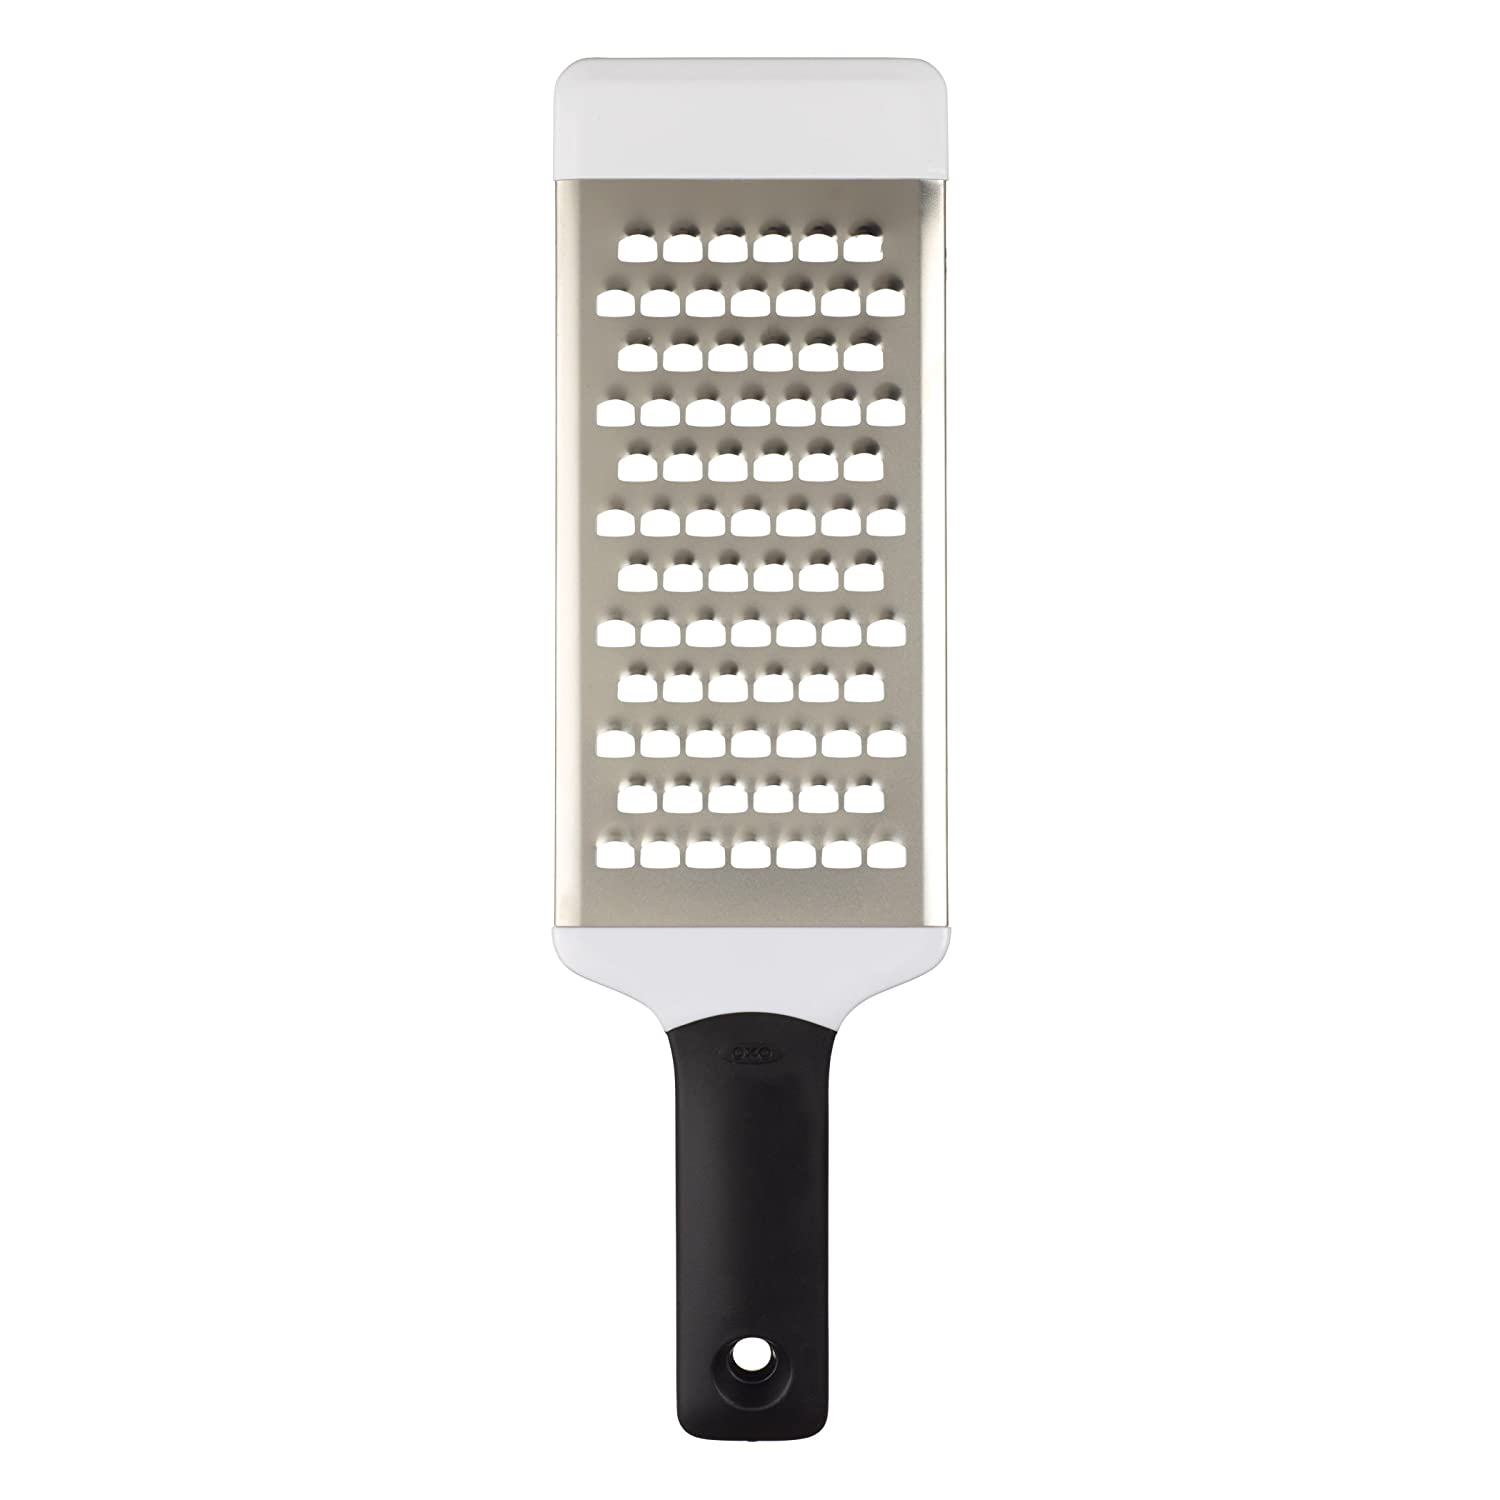 OXO Good Grips Bi-directional Grater 1121980